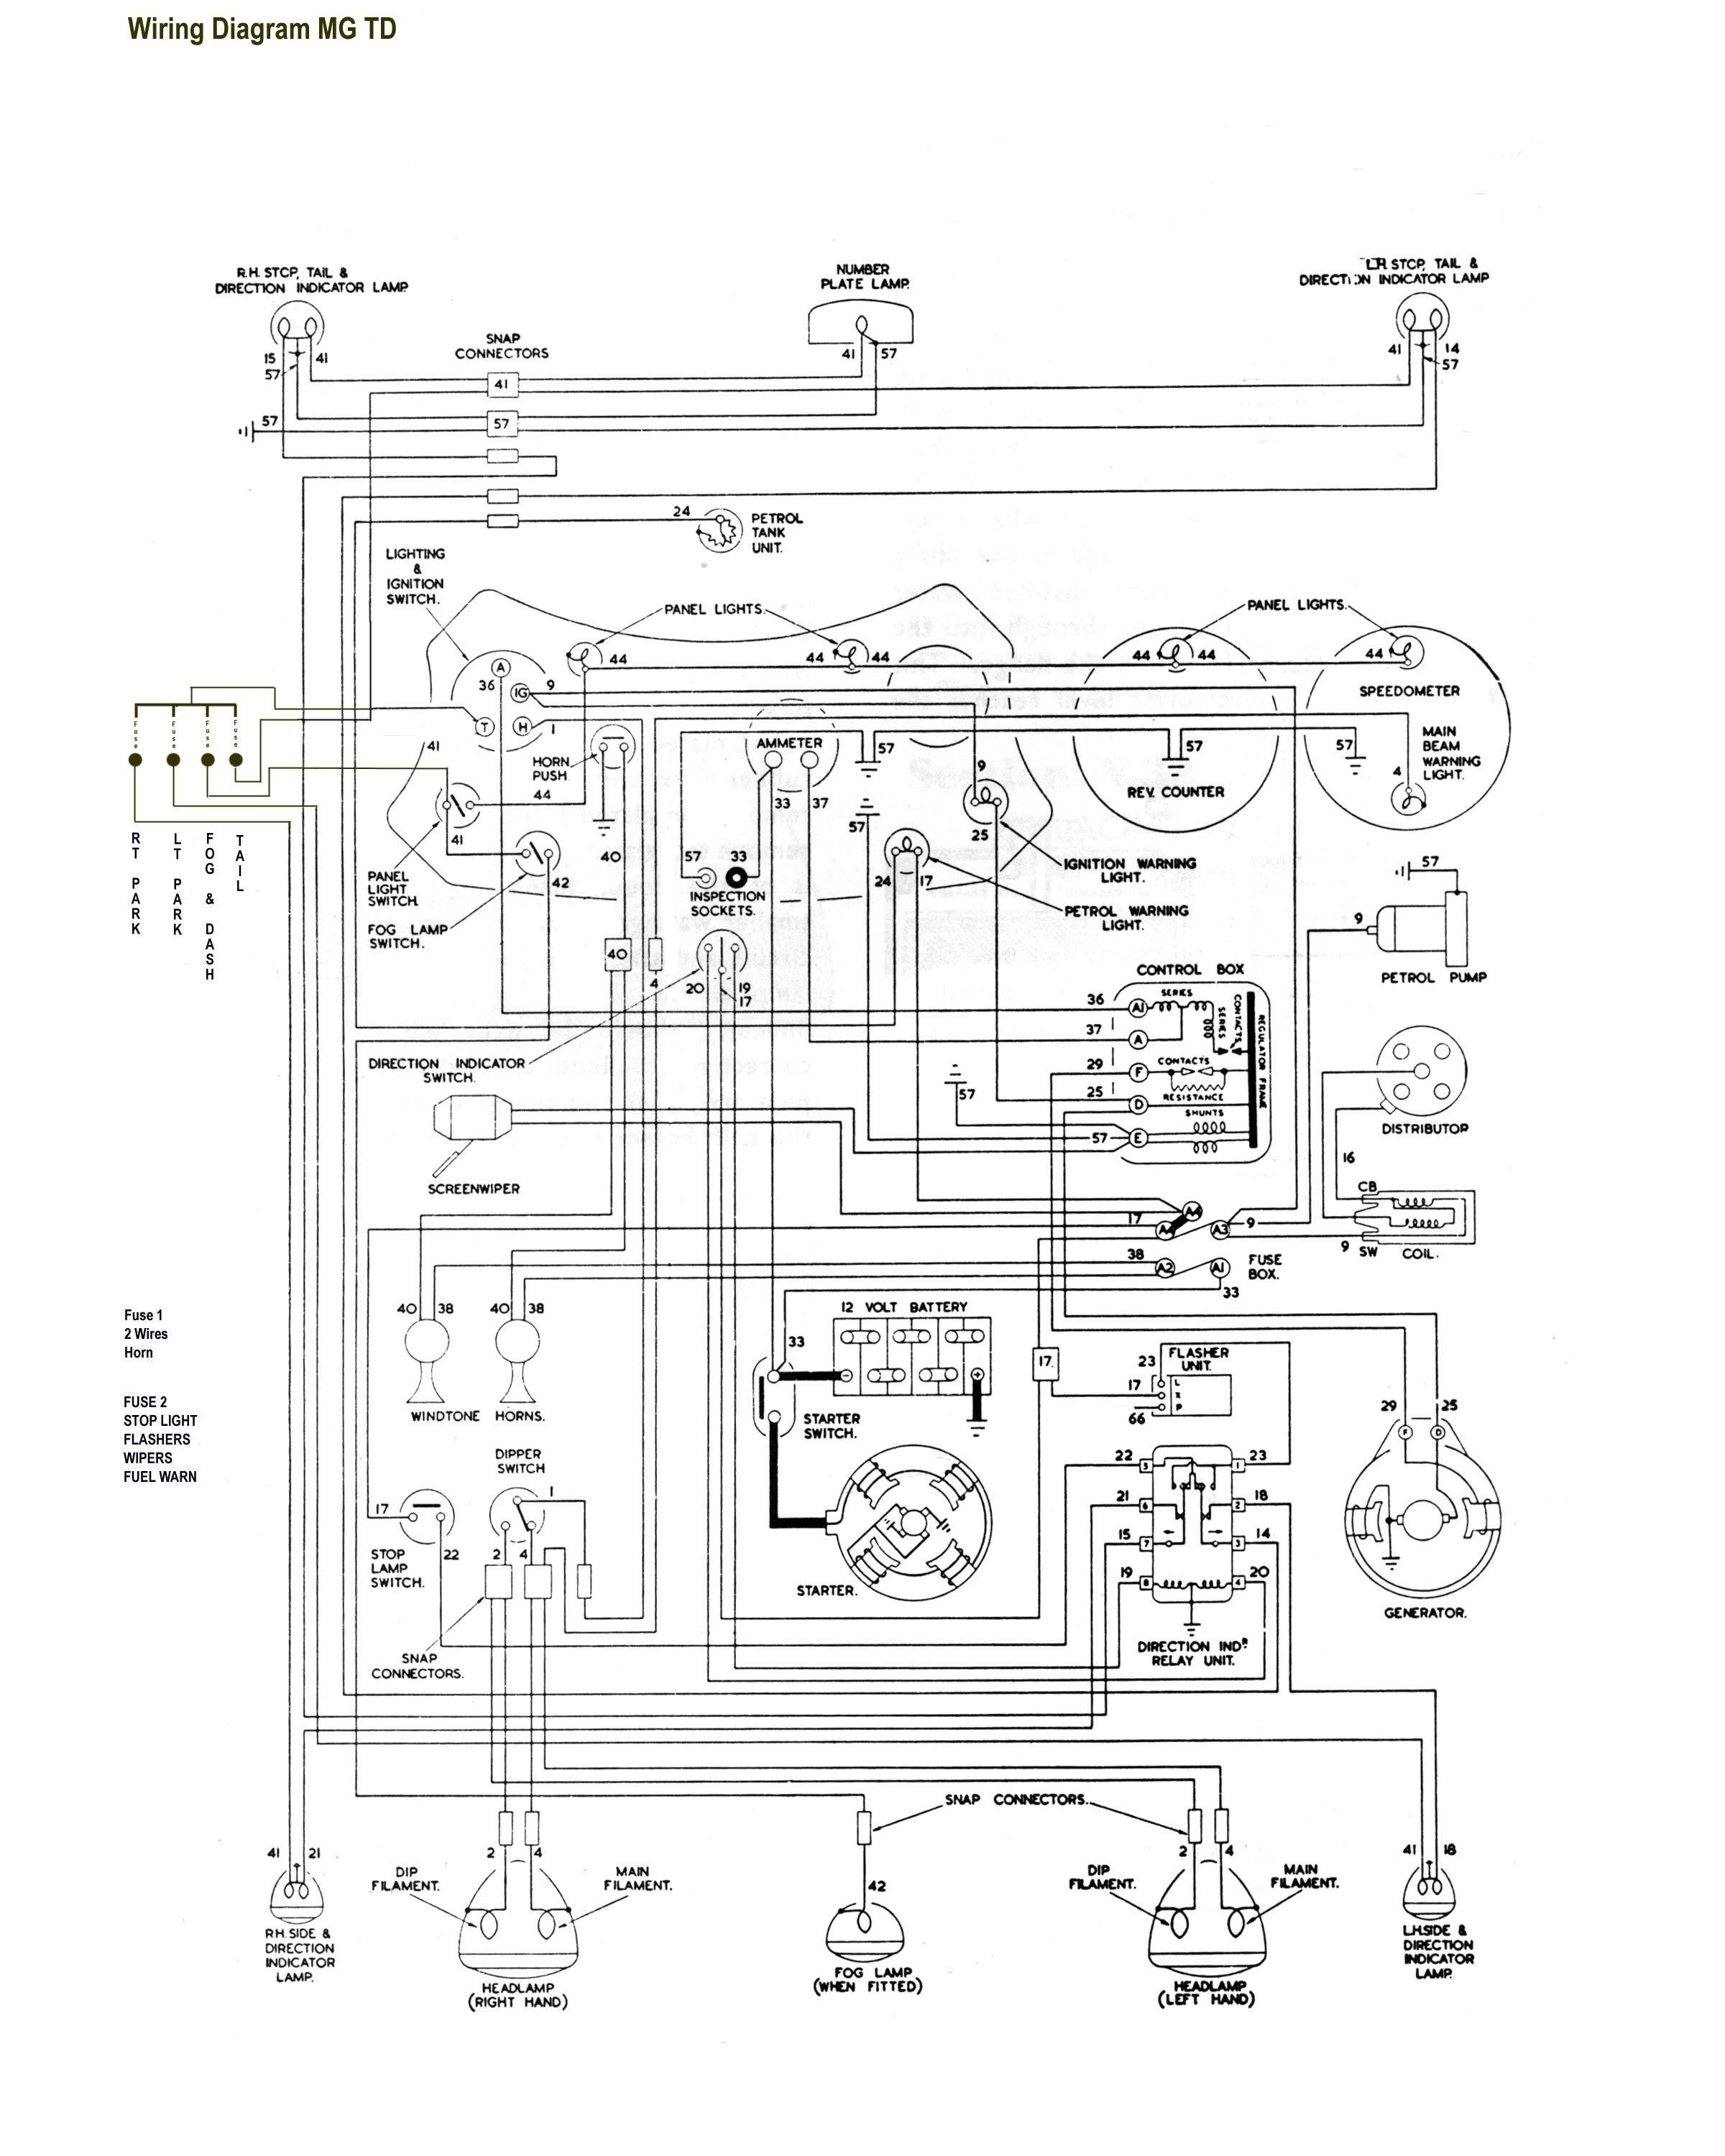 MerzWiring mg tf wiring diagram mg tc wiring diagram \u2022 free wiring diagrams Basic Electrical Wiring Diagrams at bakdesigns.co